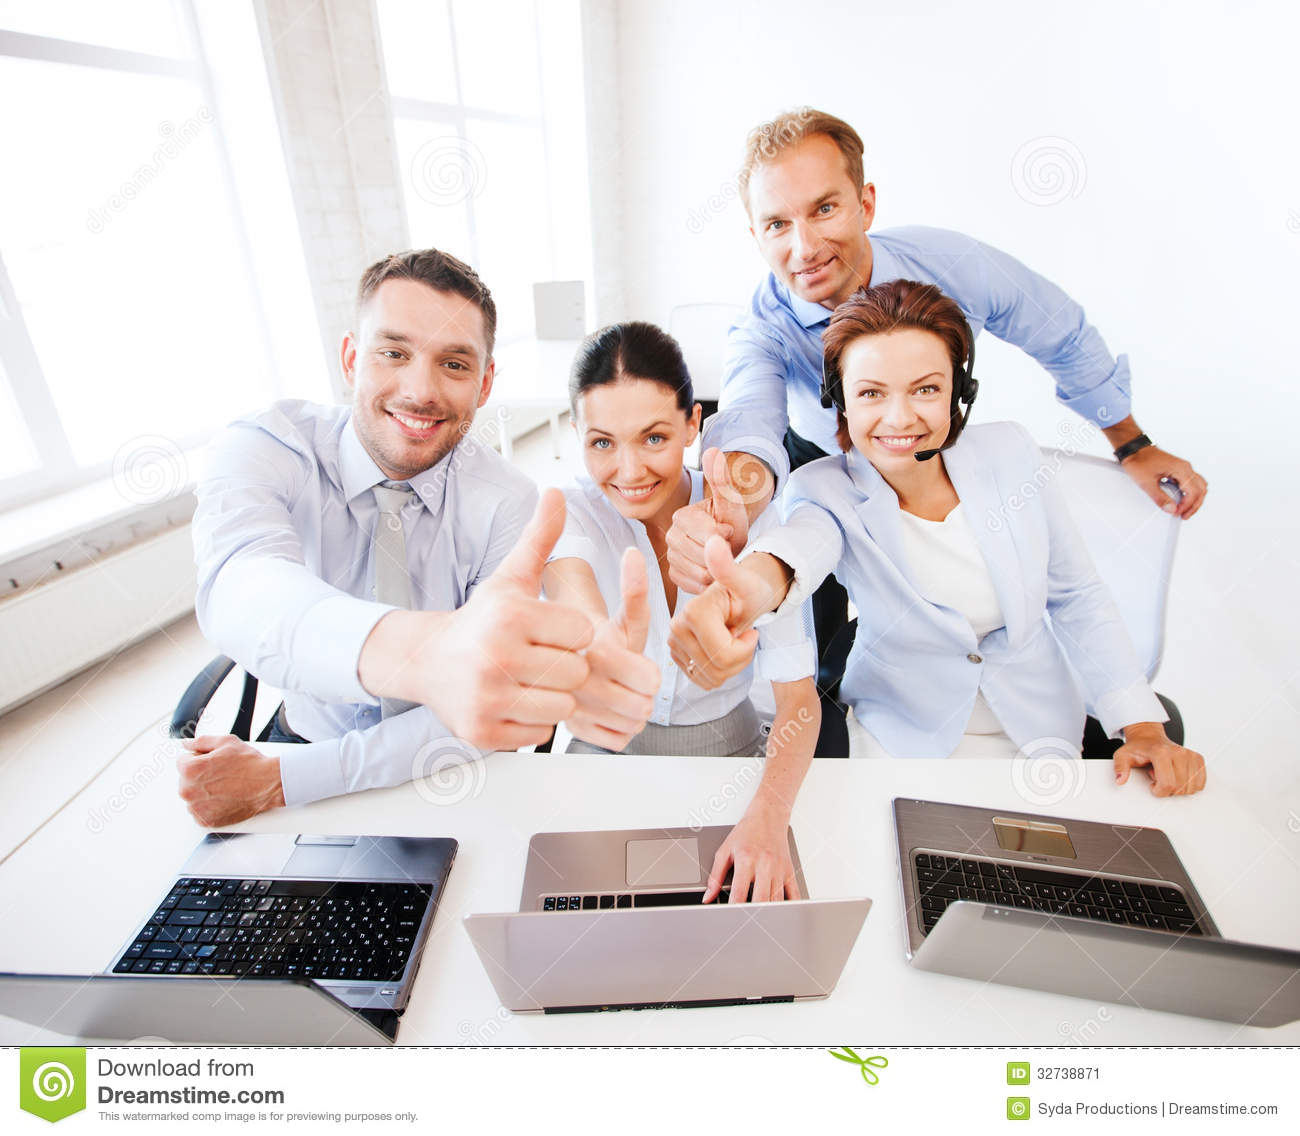 Call Center Networking Group 101